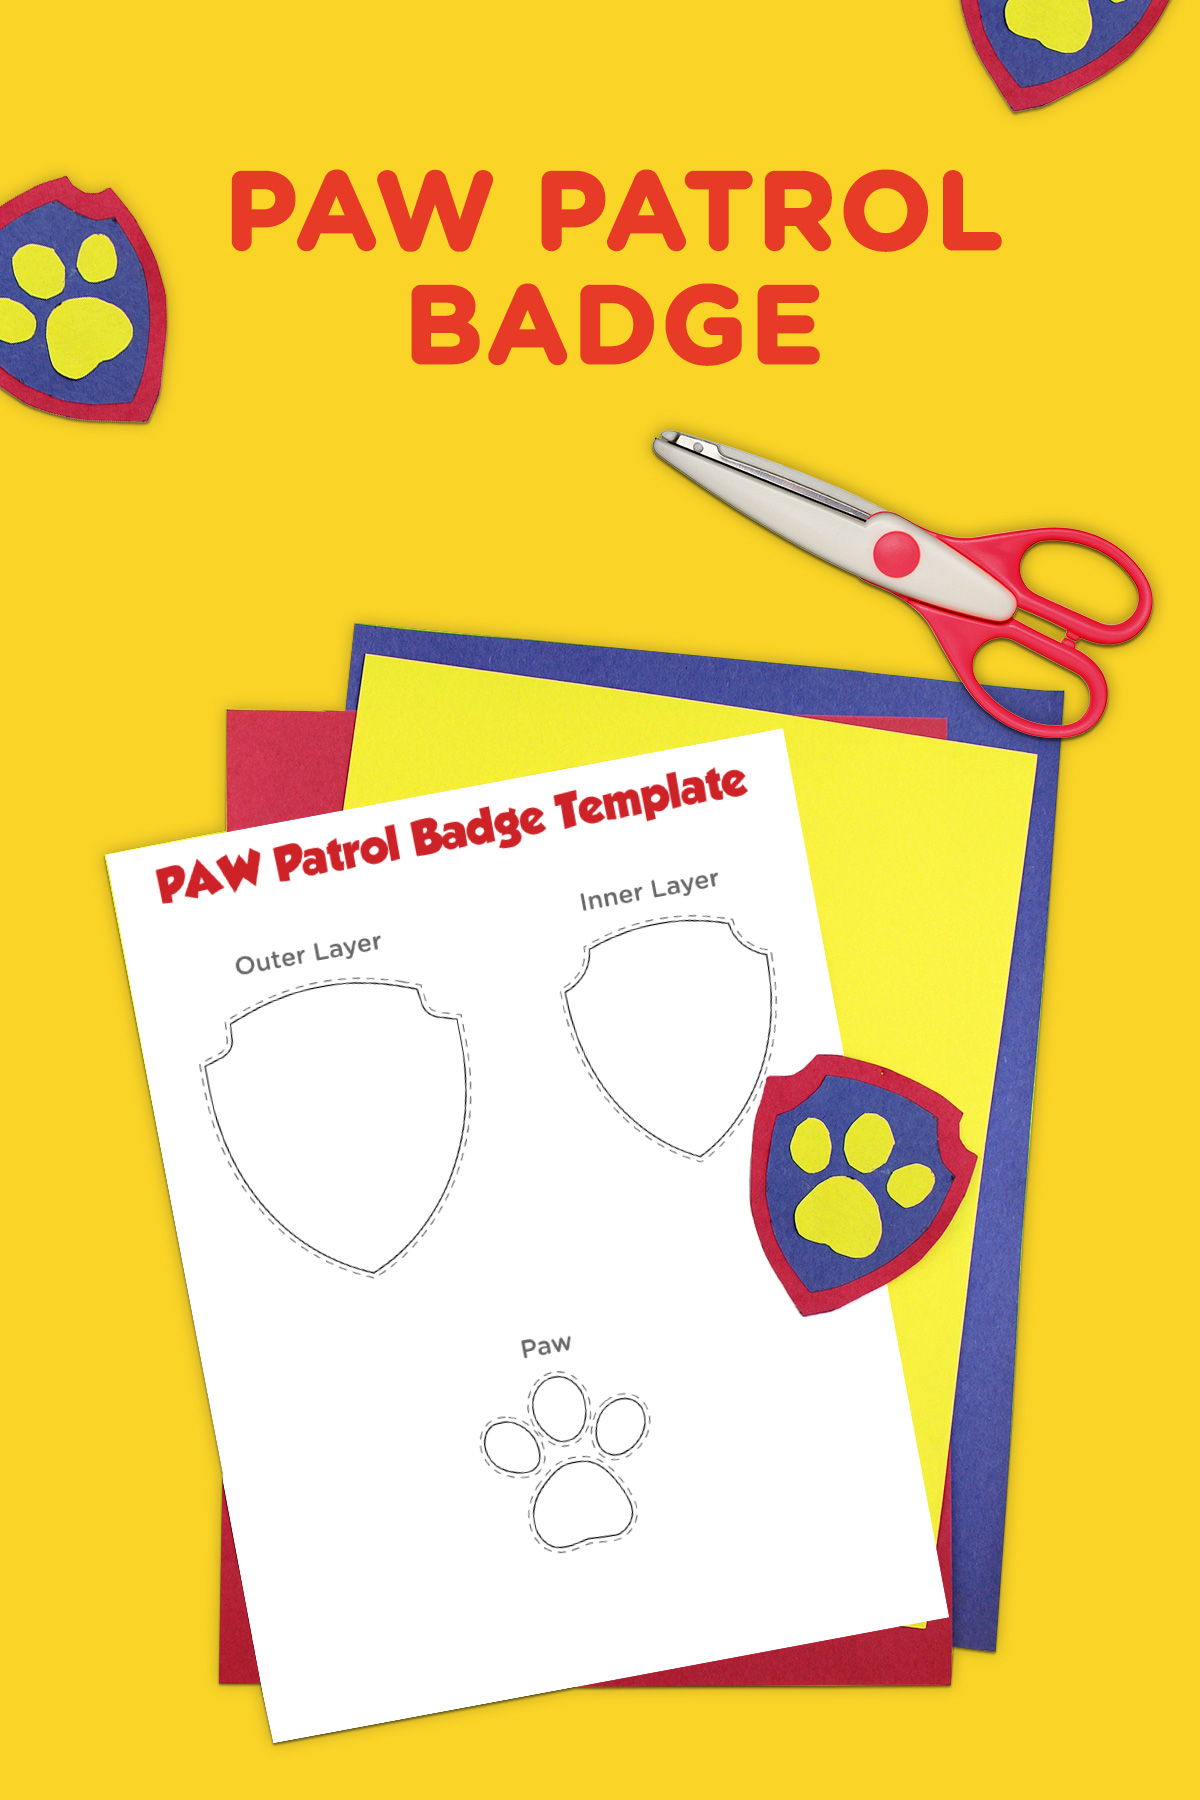 photograph about Free Printable Paw Patrol Badges titled PAW Patrol Printable Badge Template Nickelodeon Mother and father